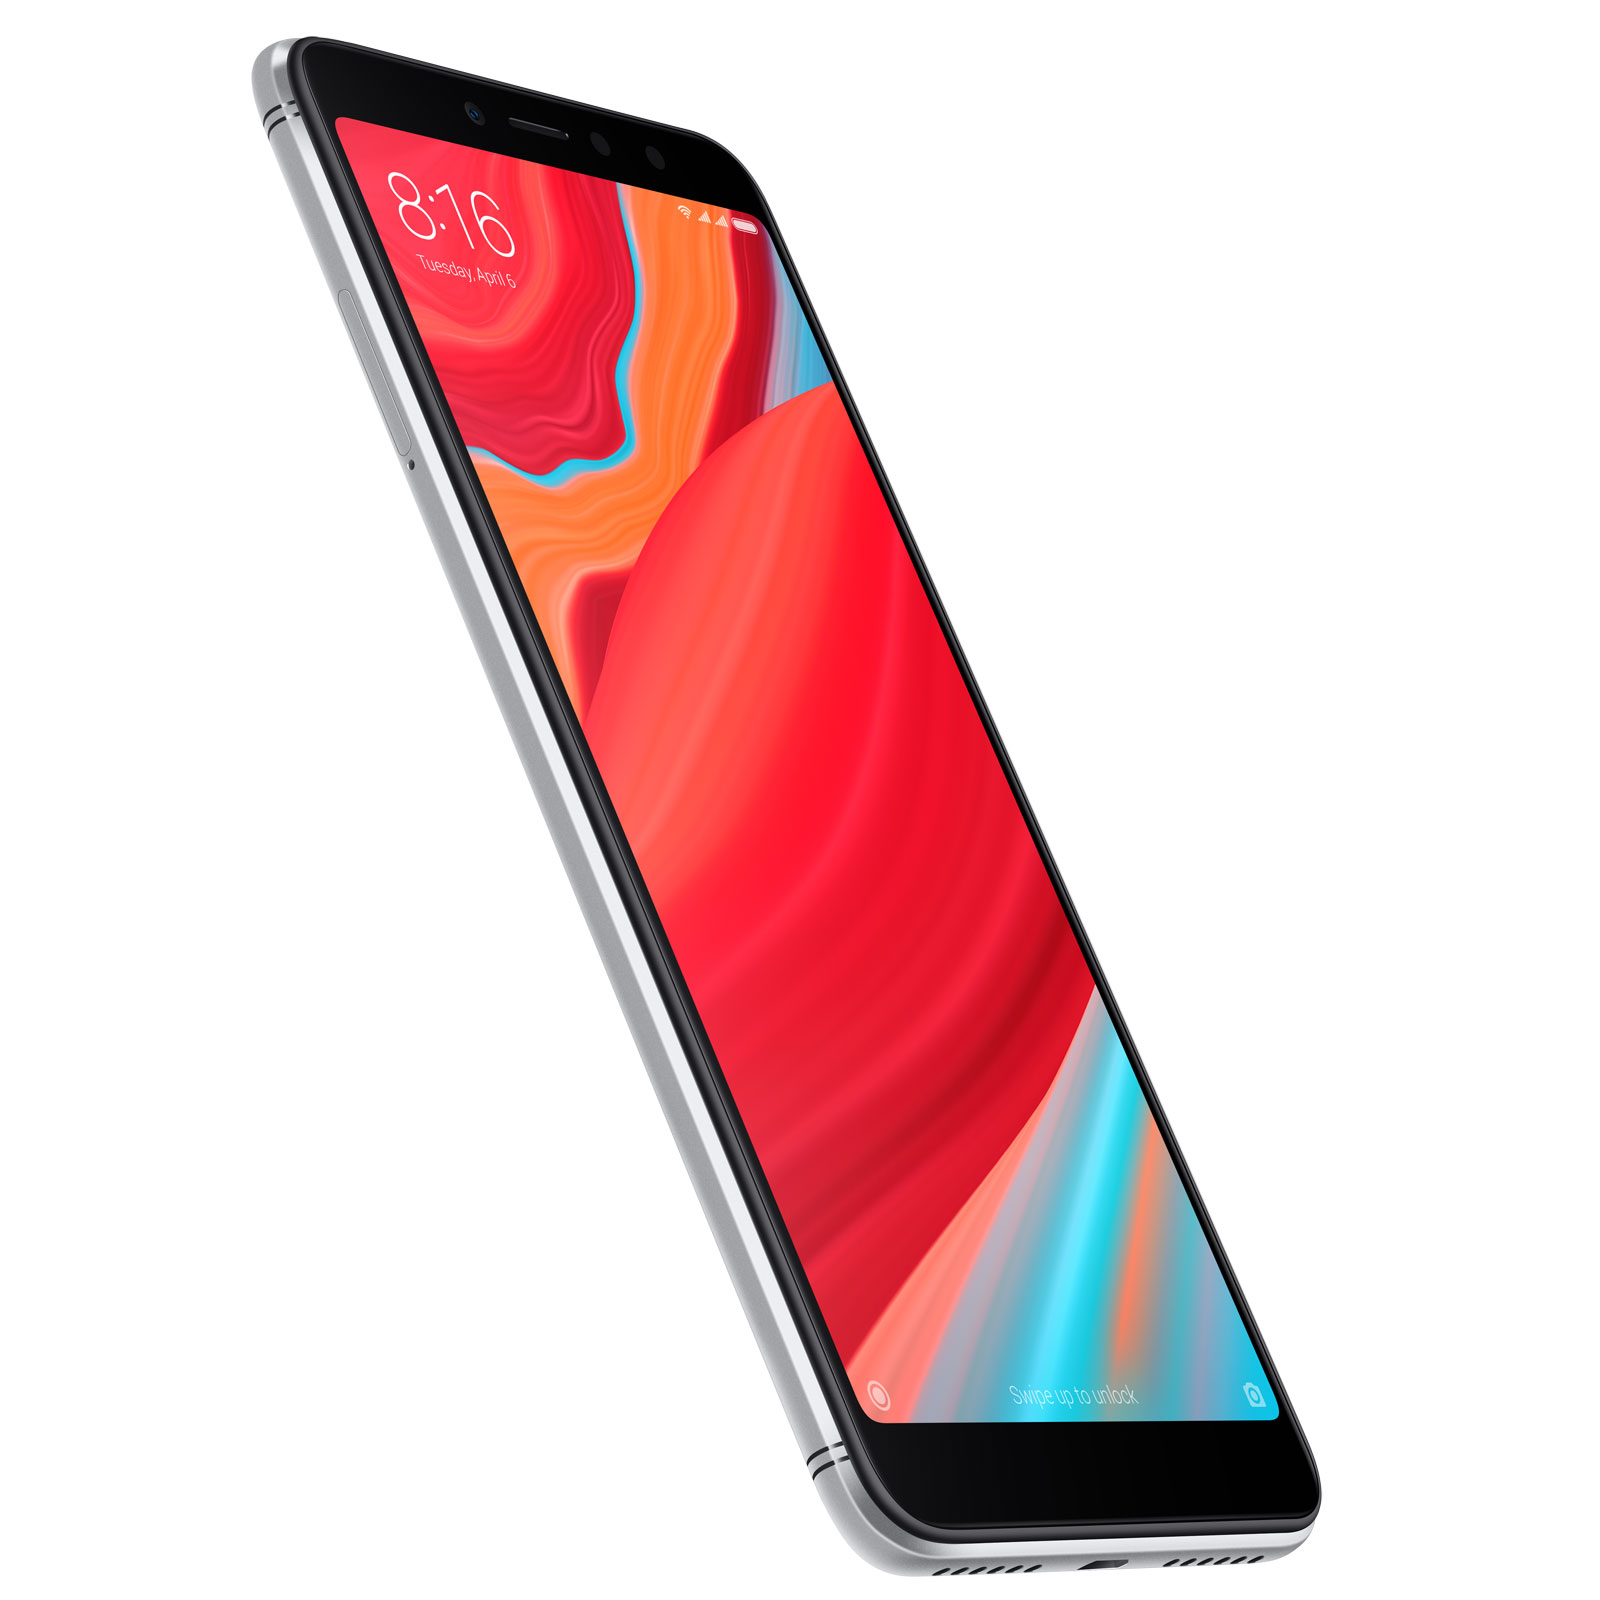 "Mobile & smartphone Xiaomi Redmi S2 Gris (32 Go) Smartphone 4G-LTE Dual SIM - Snapdragon 625 Octo-Core 2.0 GHz - RAM 3 Go - Ecran tactile 5.99"" 720 x 1440 - 32 Go - NFC/Bluetooth 4.2 - 3080 mAh - Android 8.1"